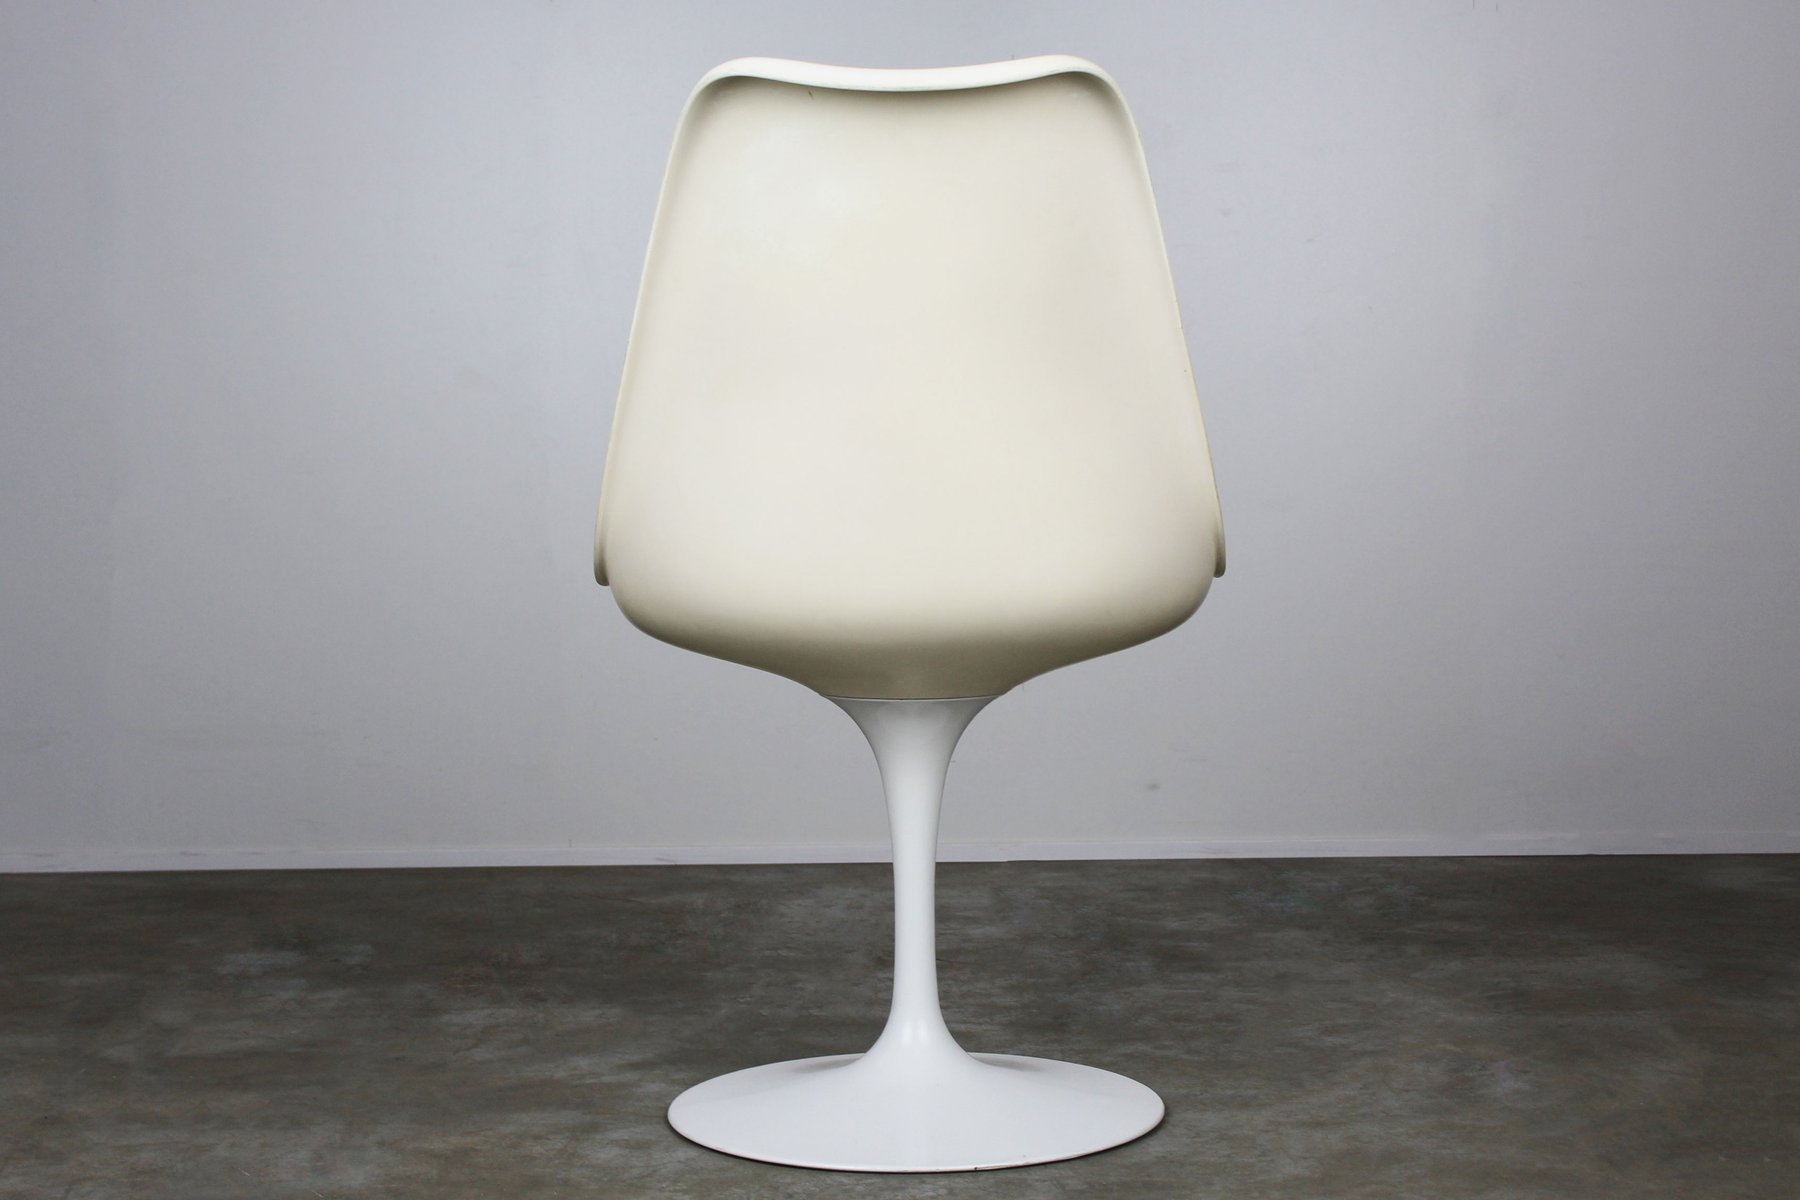 Tulip chairs by eero saarinen for knoll international 1960s set of 6 for sale at pamono - Tulip chairs for sale ...